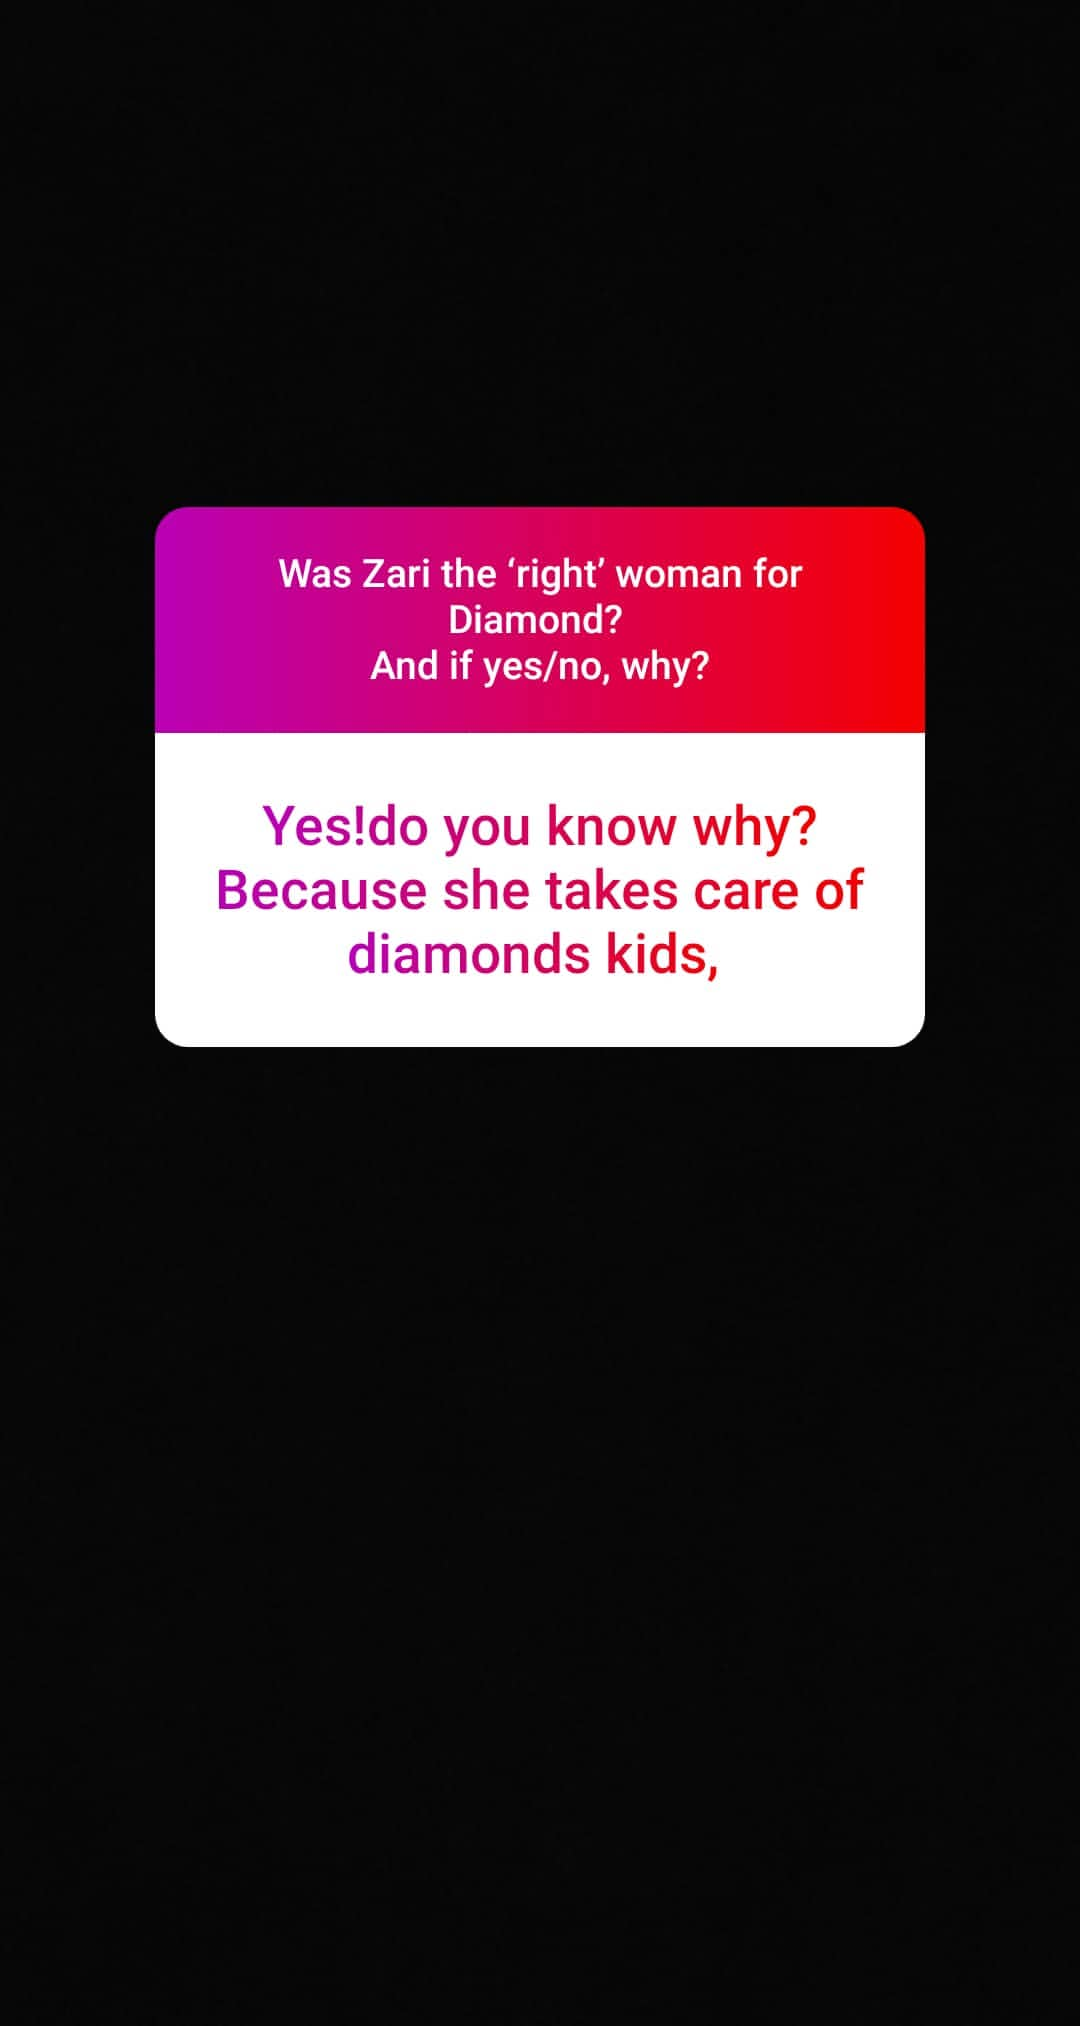 52821531 264595647765720 3999236073086785346 n - Zari is the only woman Diamond Platnumz could have settled down with – poll